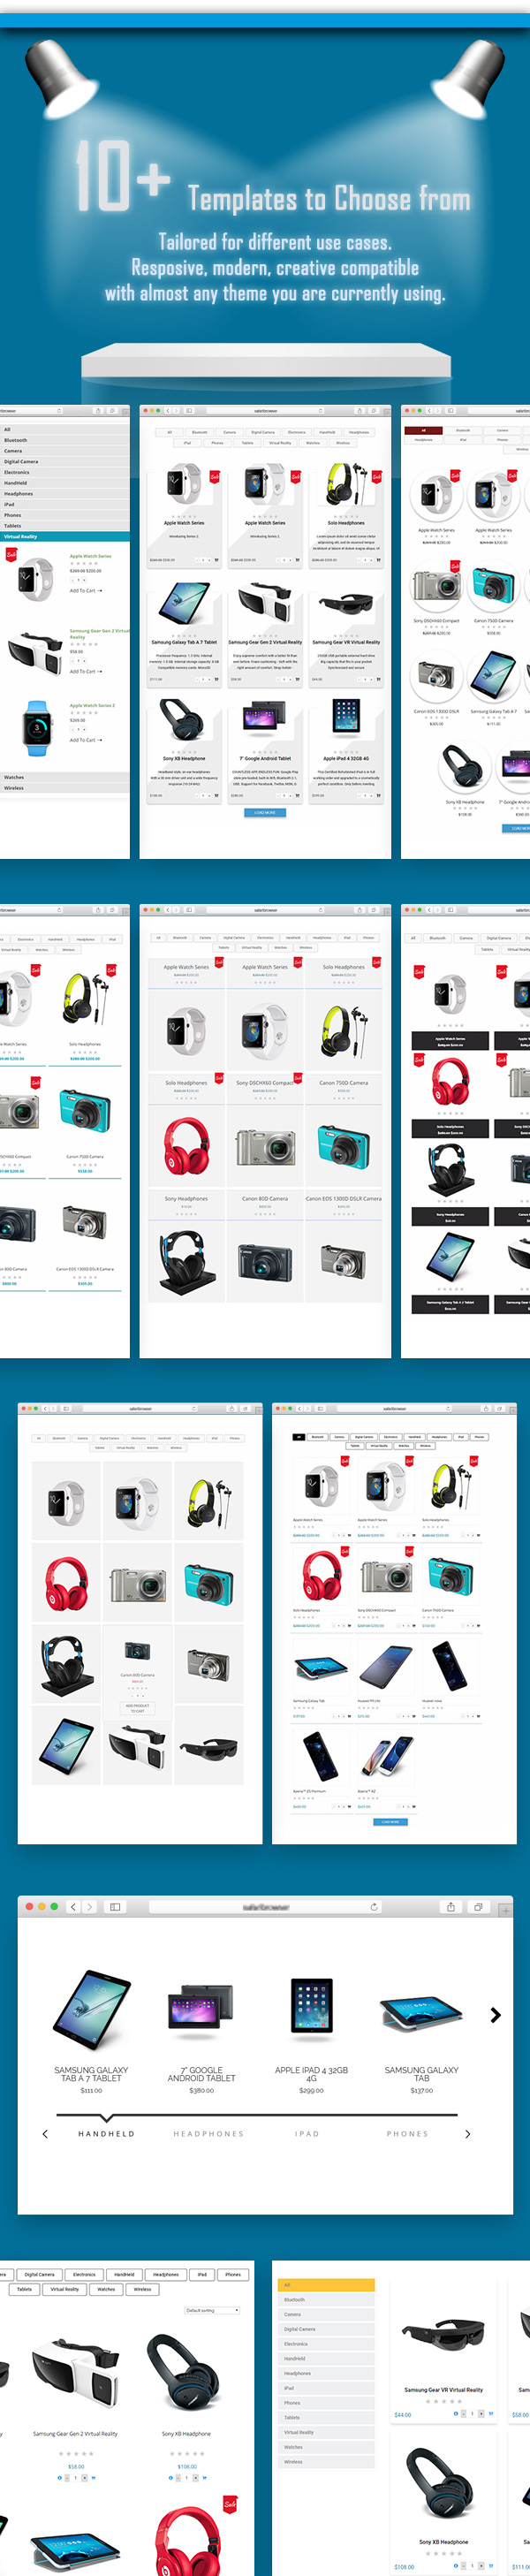 WooCommerce Tabbed Category Product Listing - Pro - 5